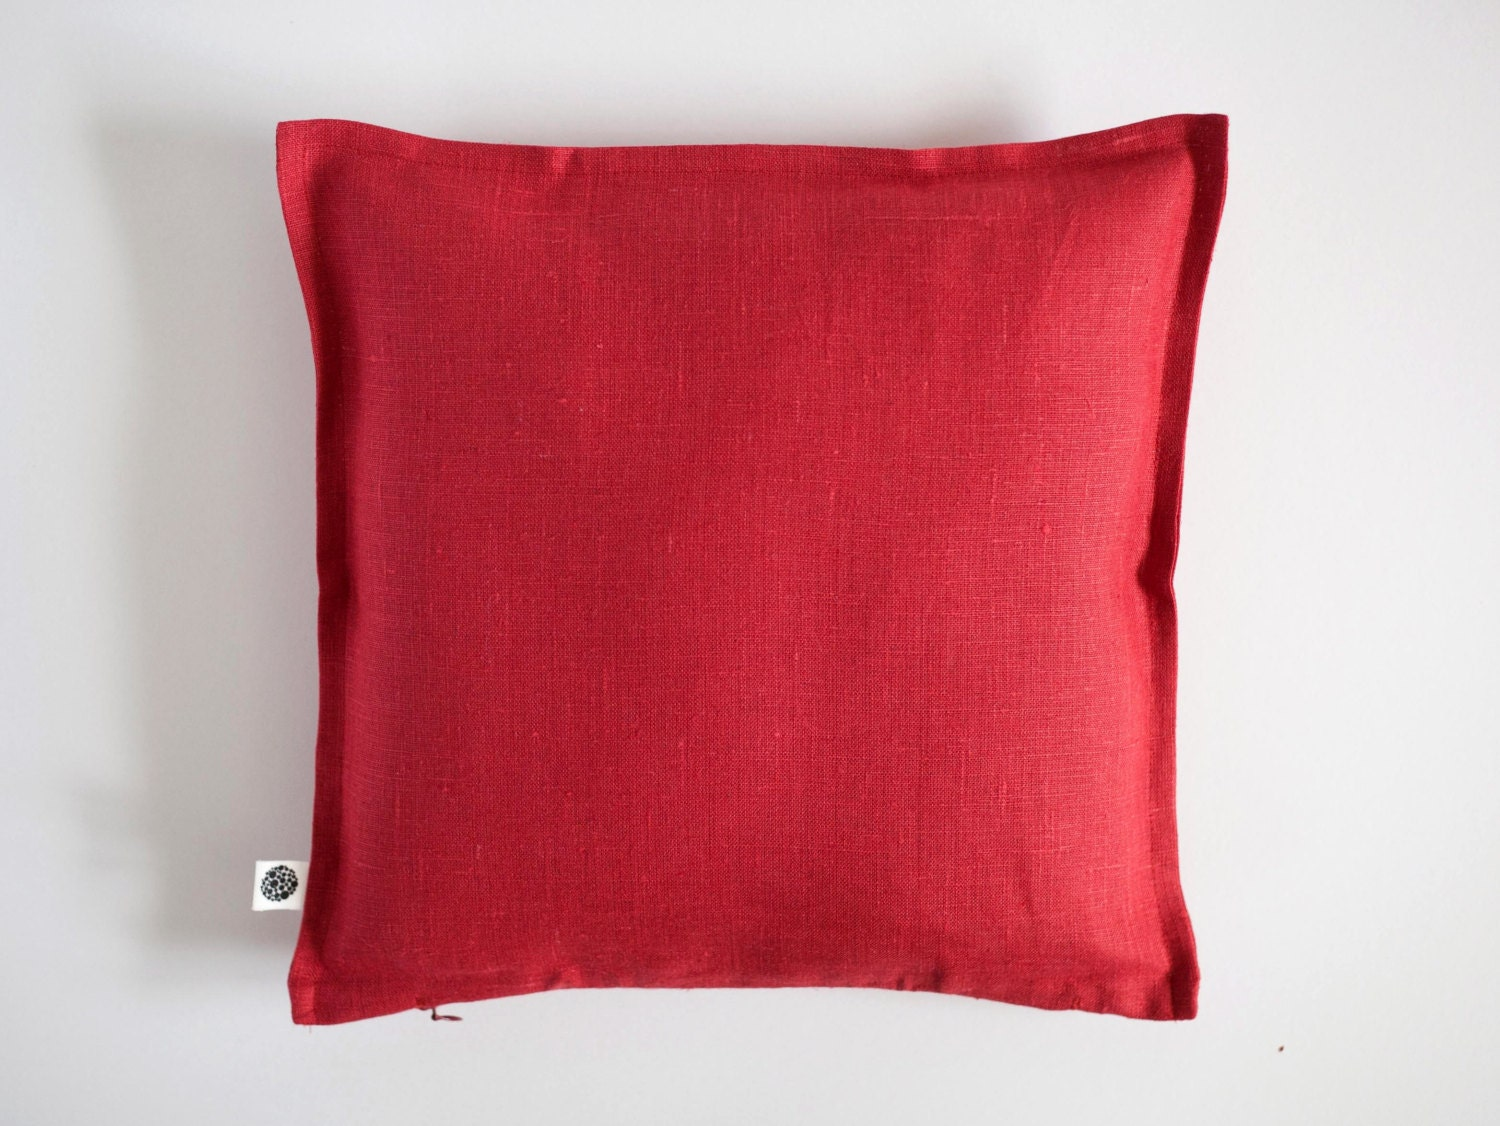 Throw Pillows With Covers : Red throw pillow pillow covers linen luxury pillow case